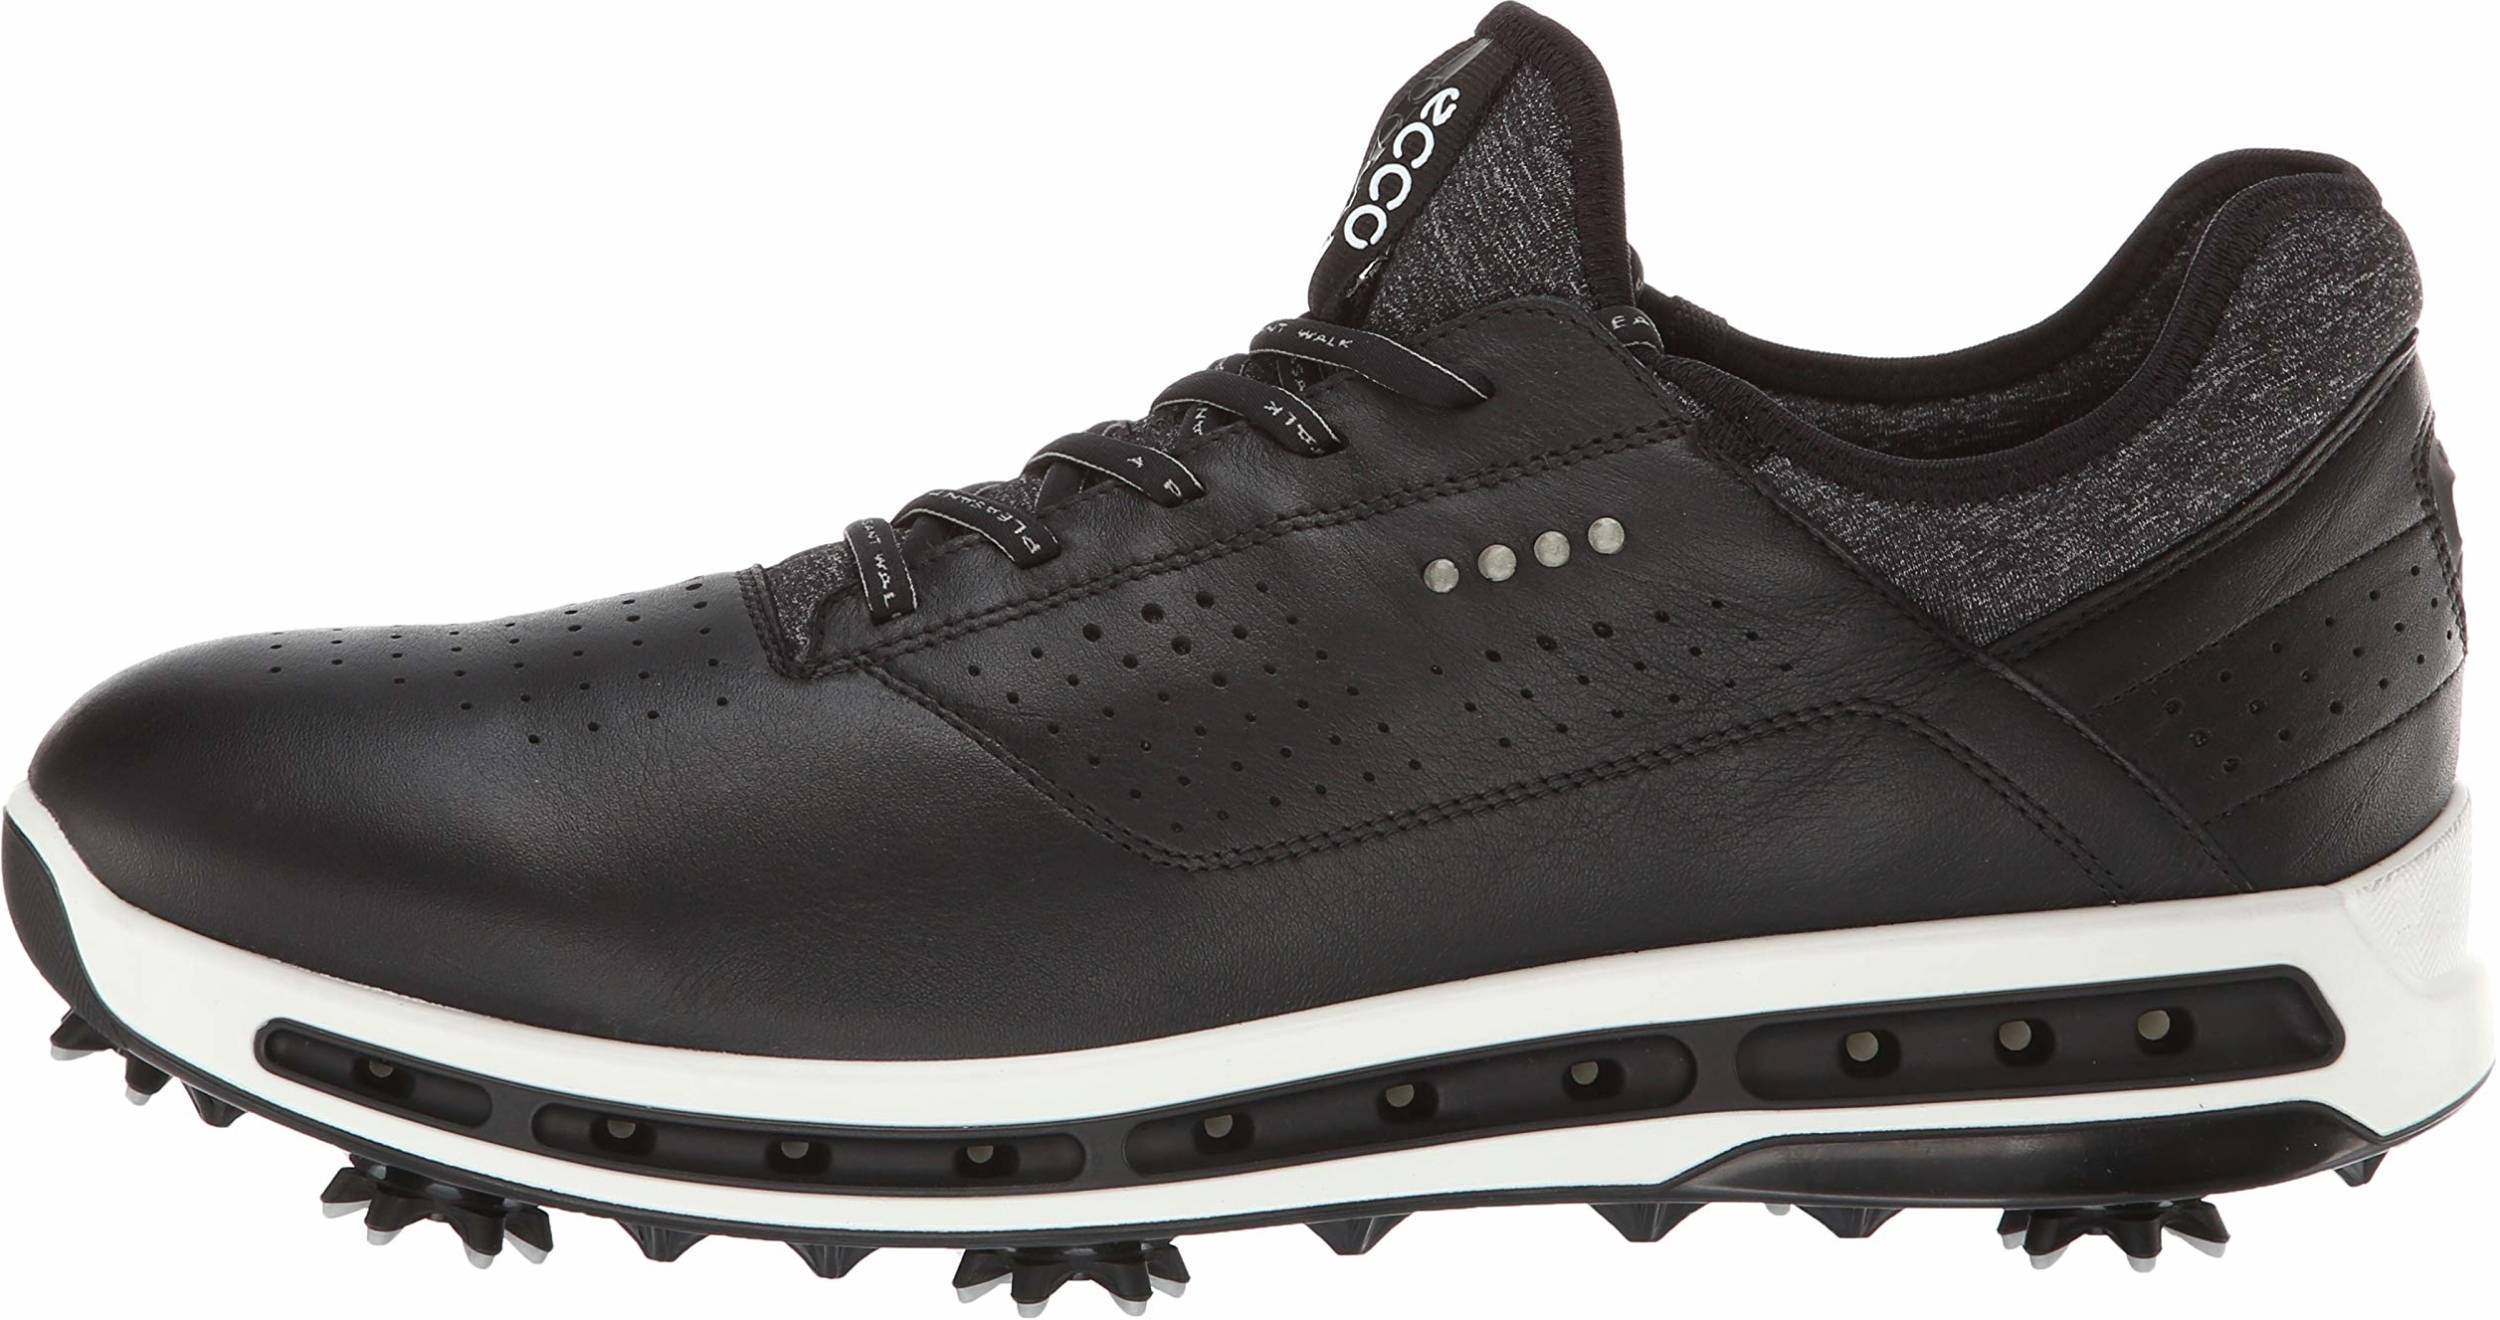 Only $162 + Review of Ecco Cool 18 GTX